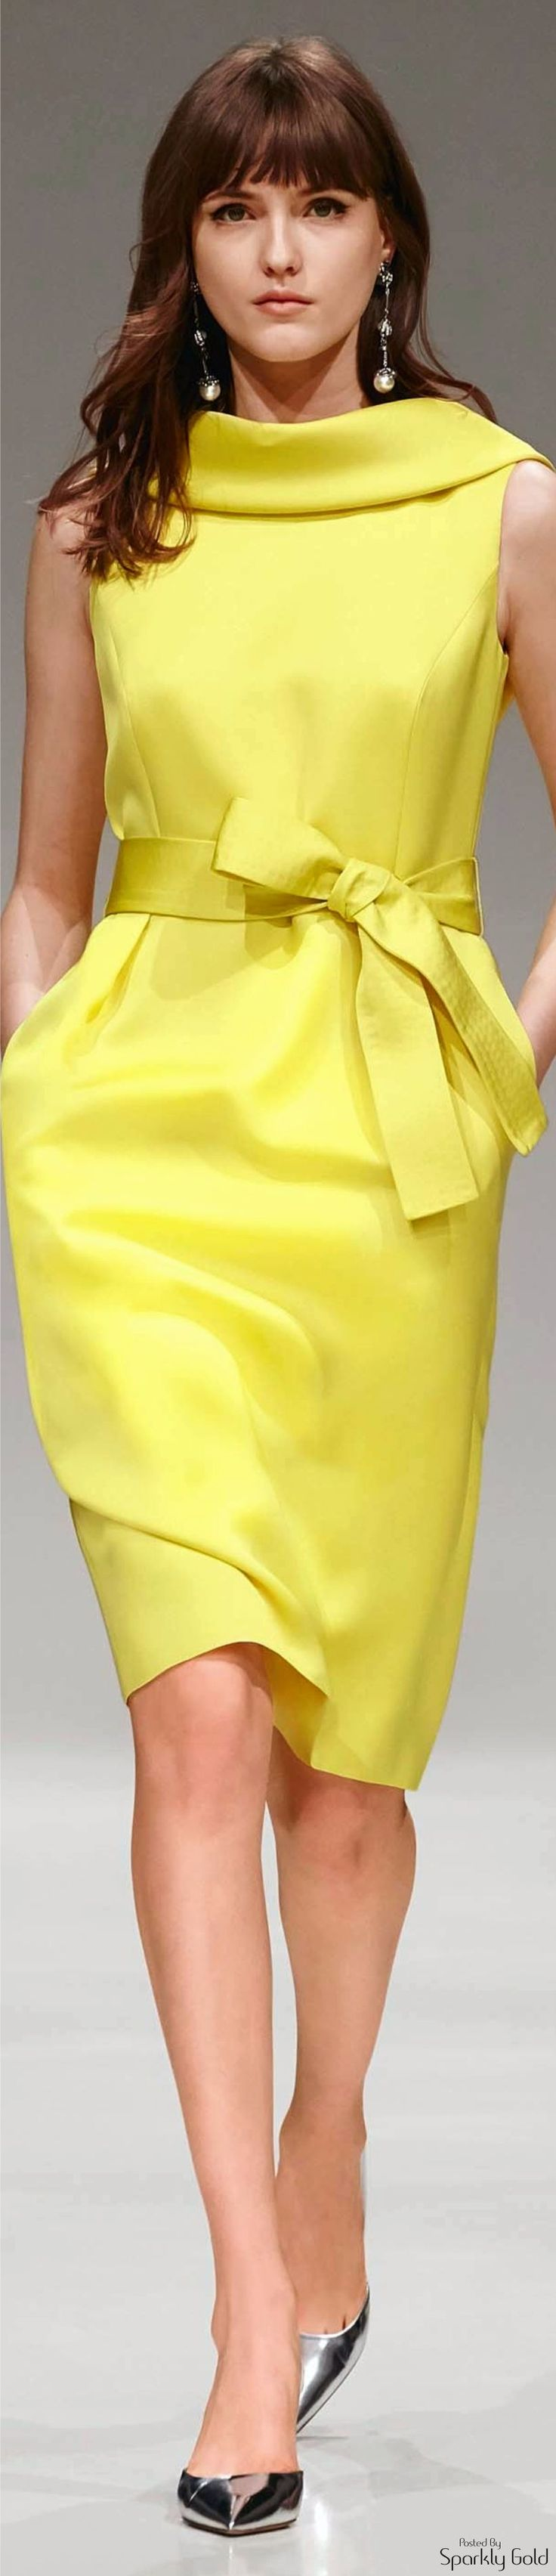 yellow dress amazon quote